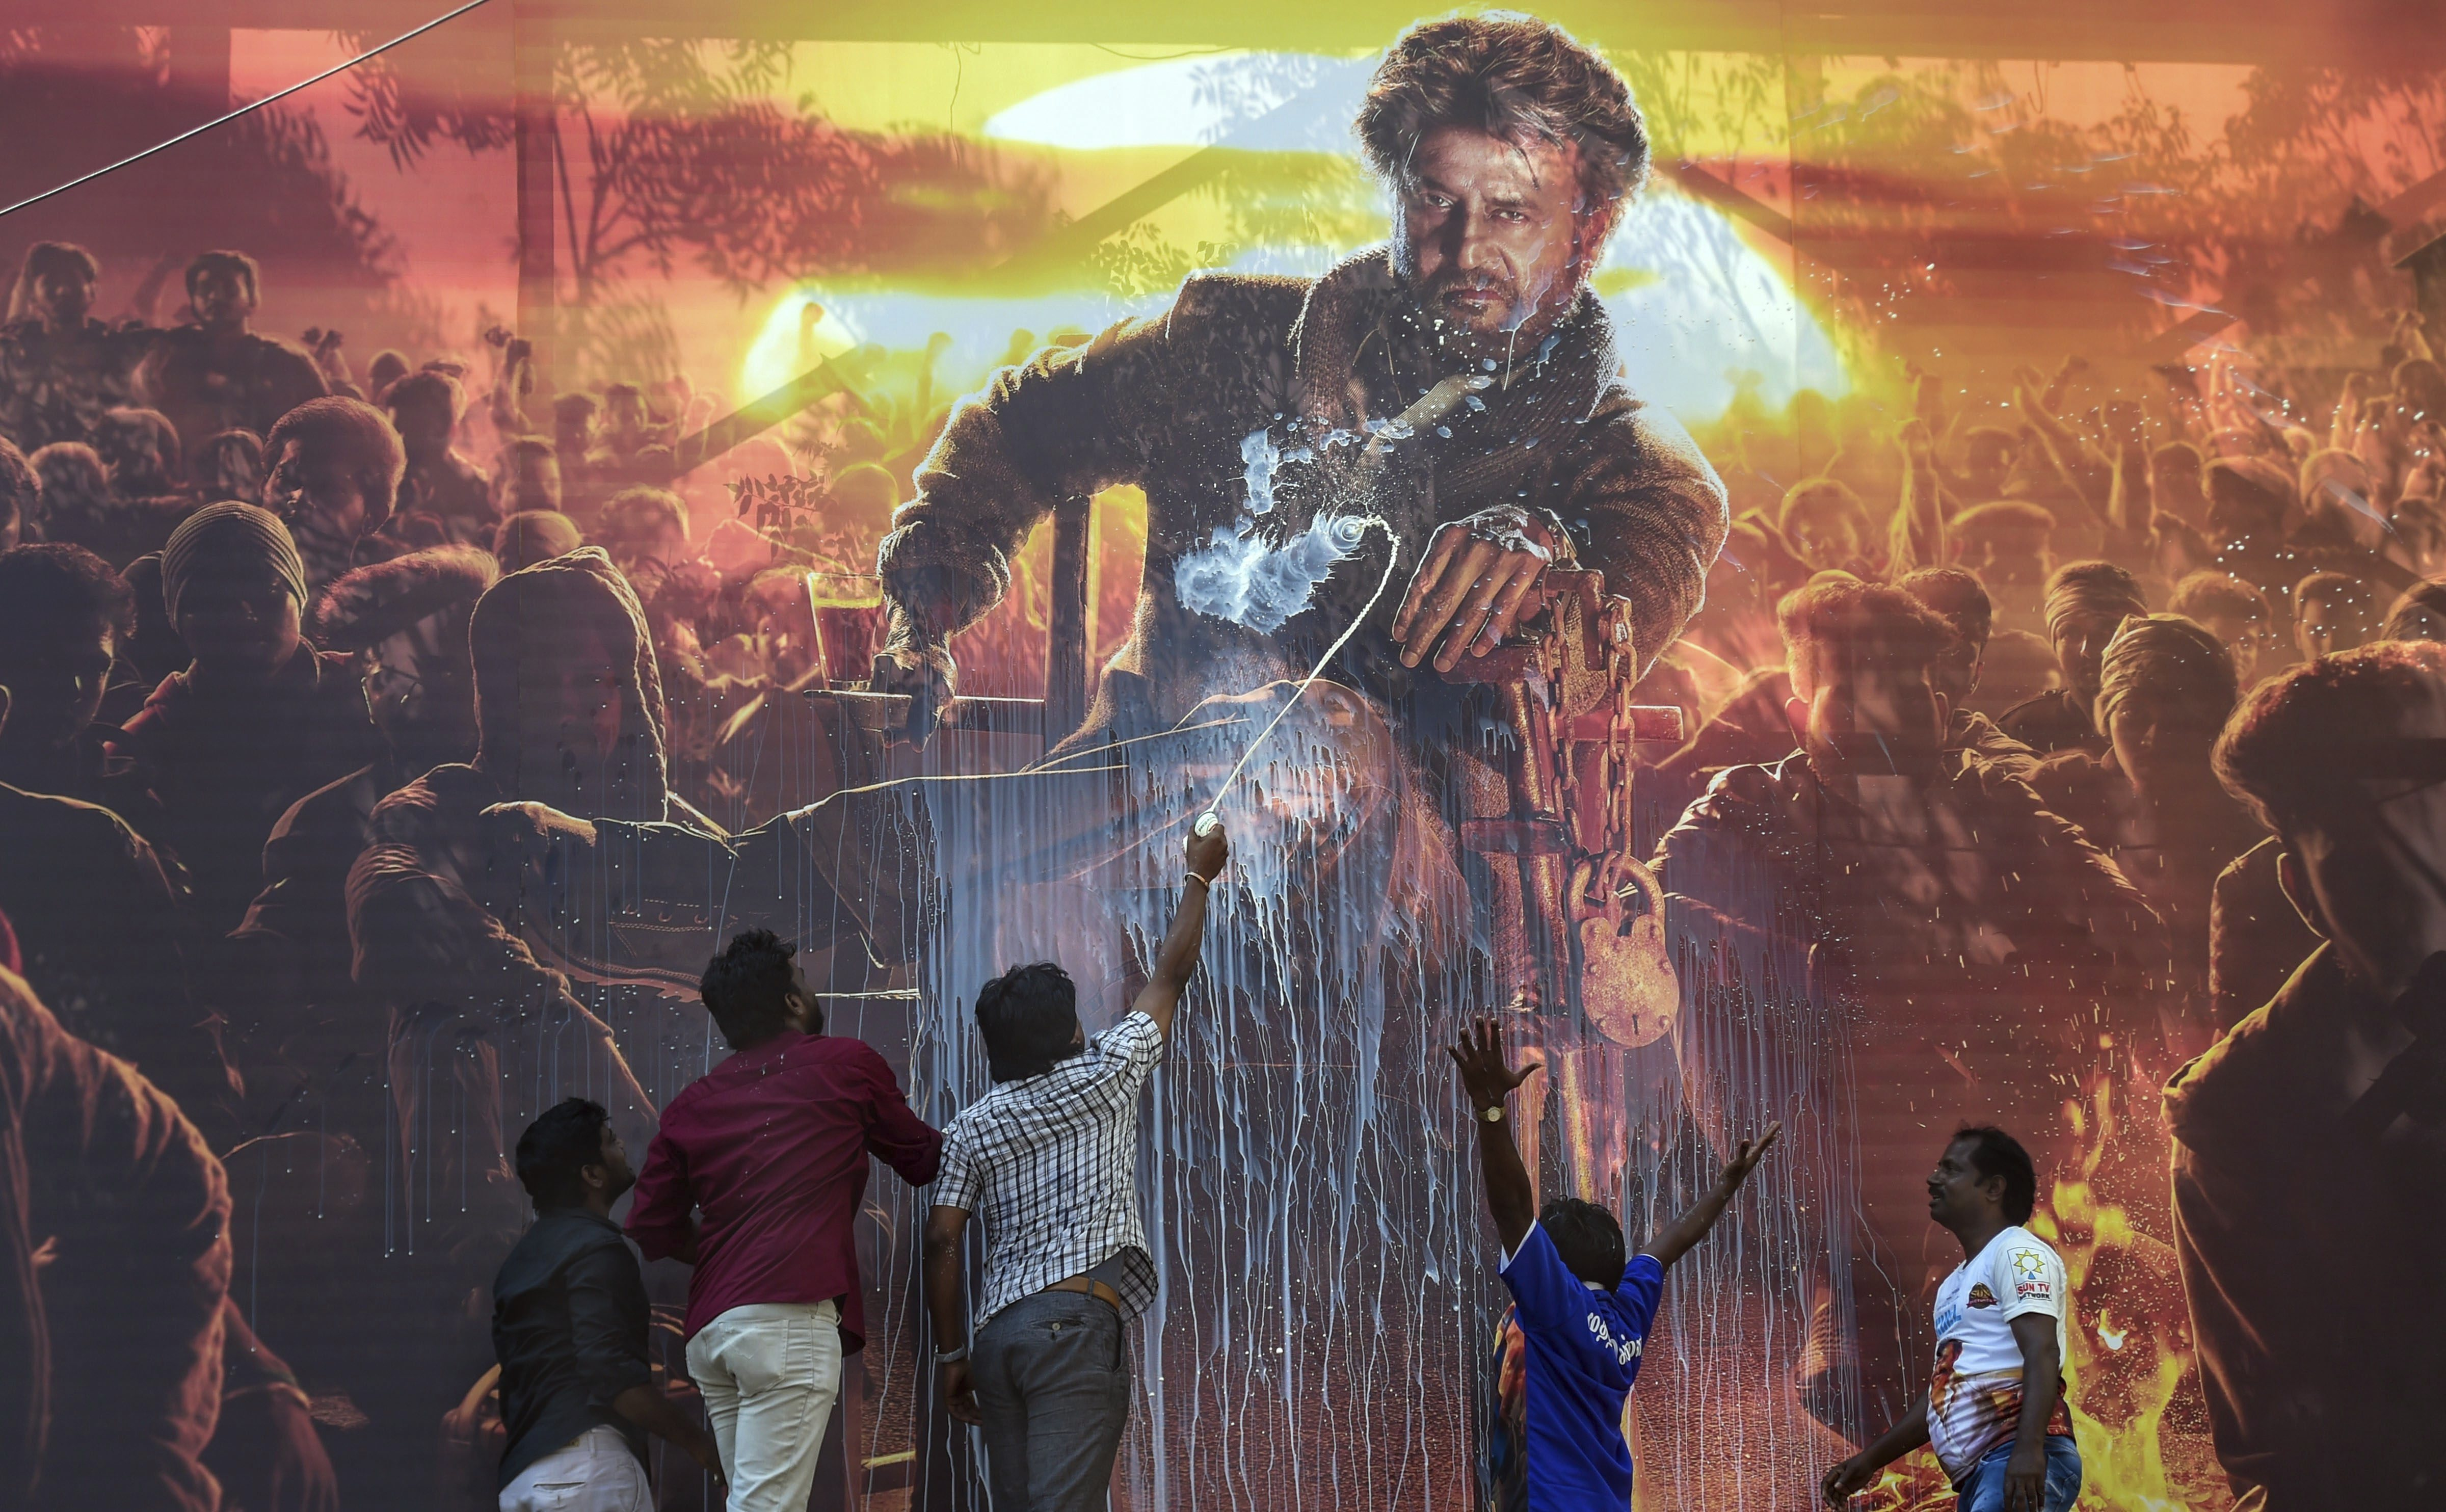 Rajnikanth fans celebrate the release of his film 'Petta' at a theater, in Chennai - PTI